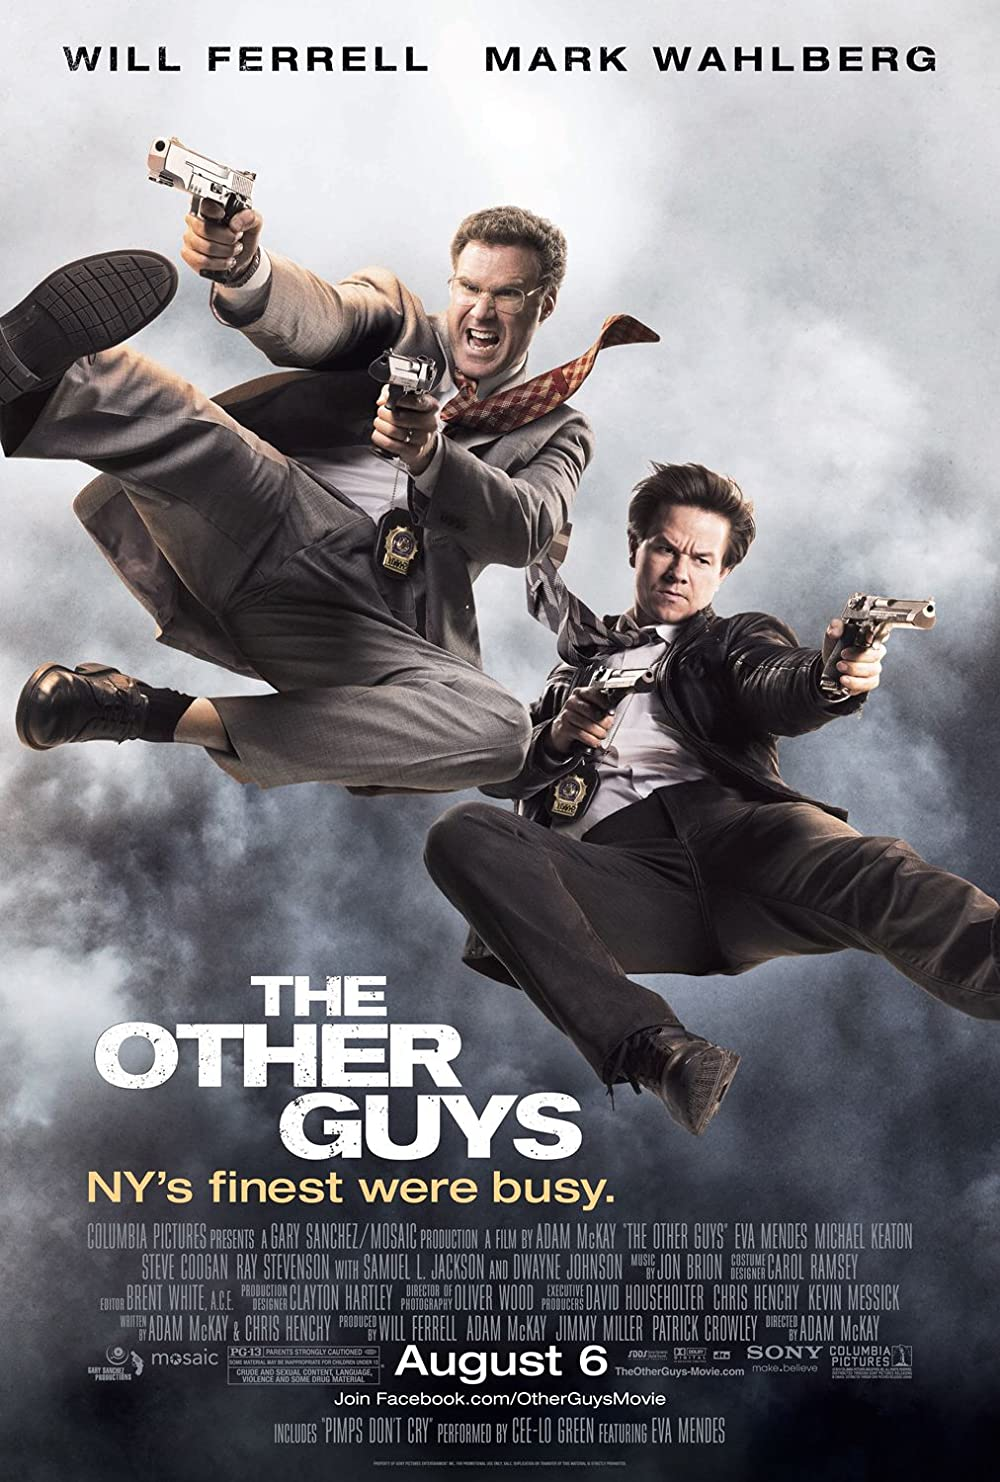 The other guys actor